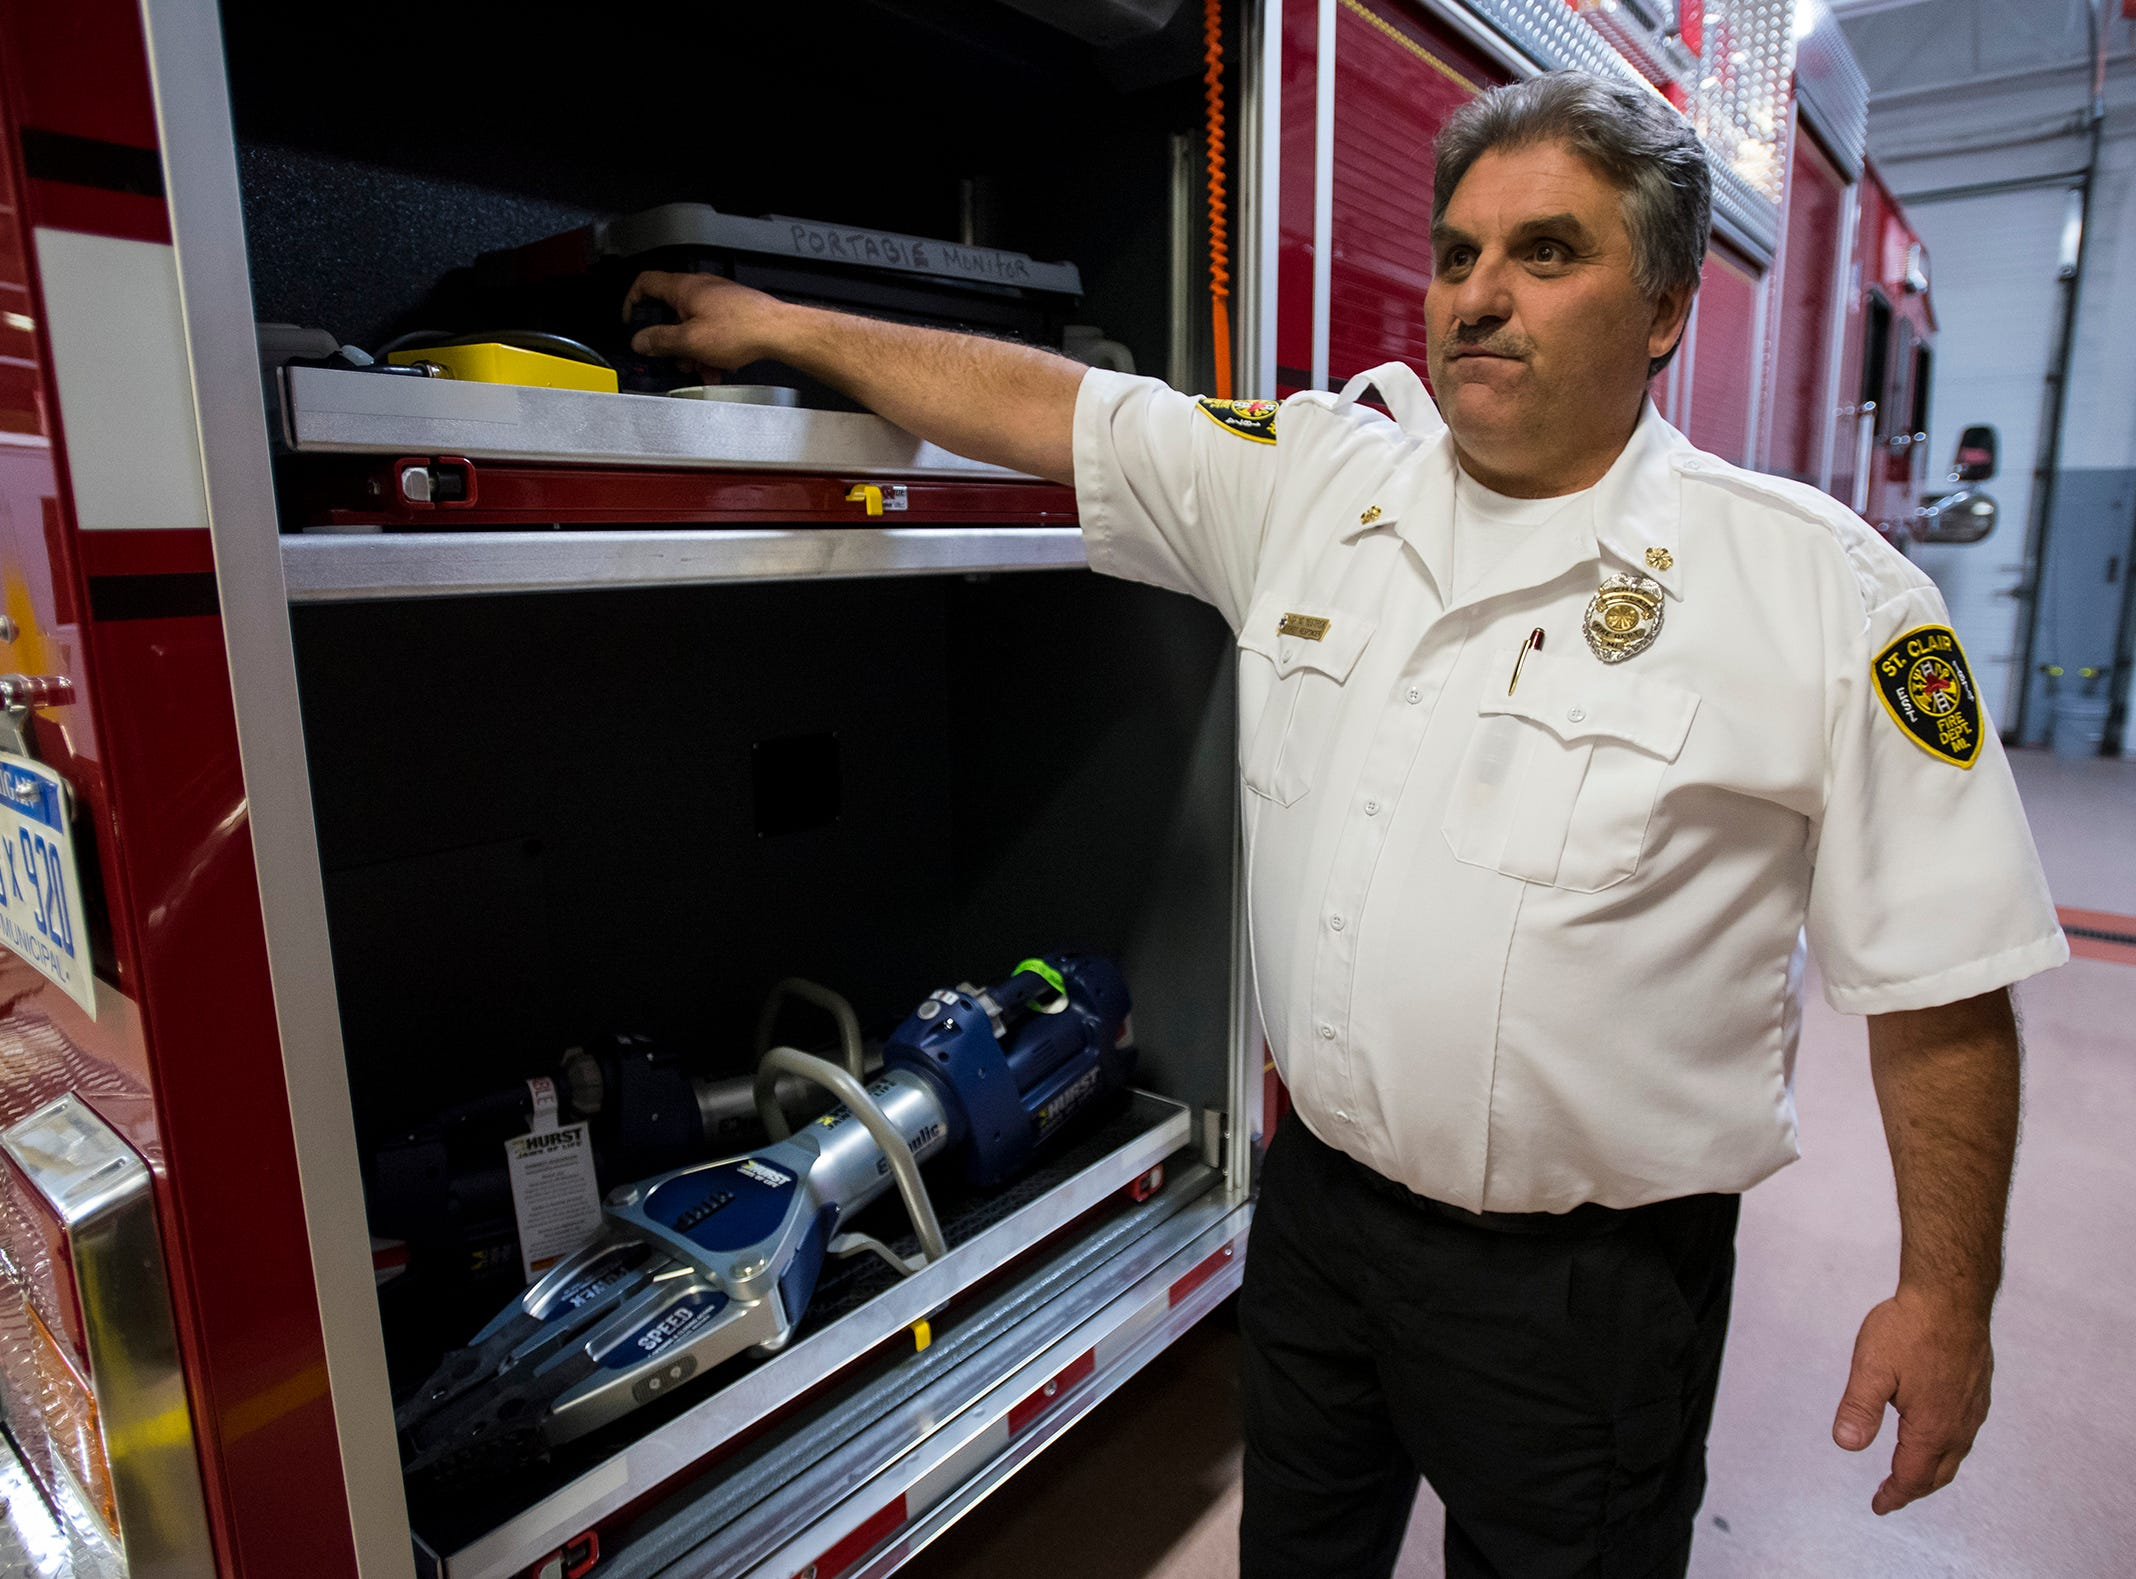 St. Clair Fire Authority Chief David Westrick talks about some of the new equipment stored on the department's new truck Wednesday, Nov. 7, 2018 at the St. Clair Fire Department.